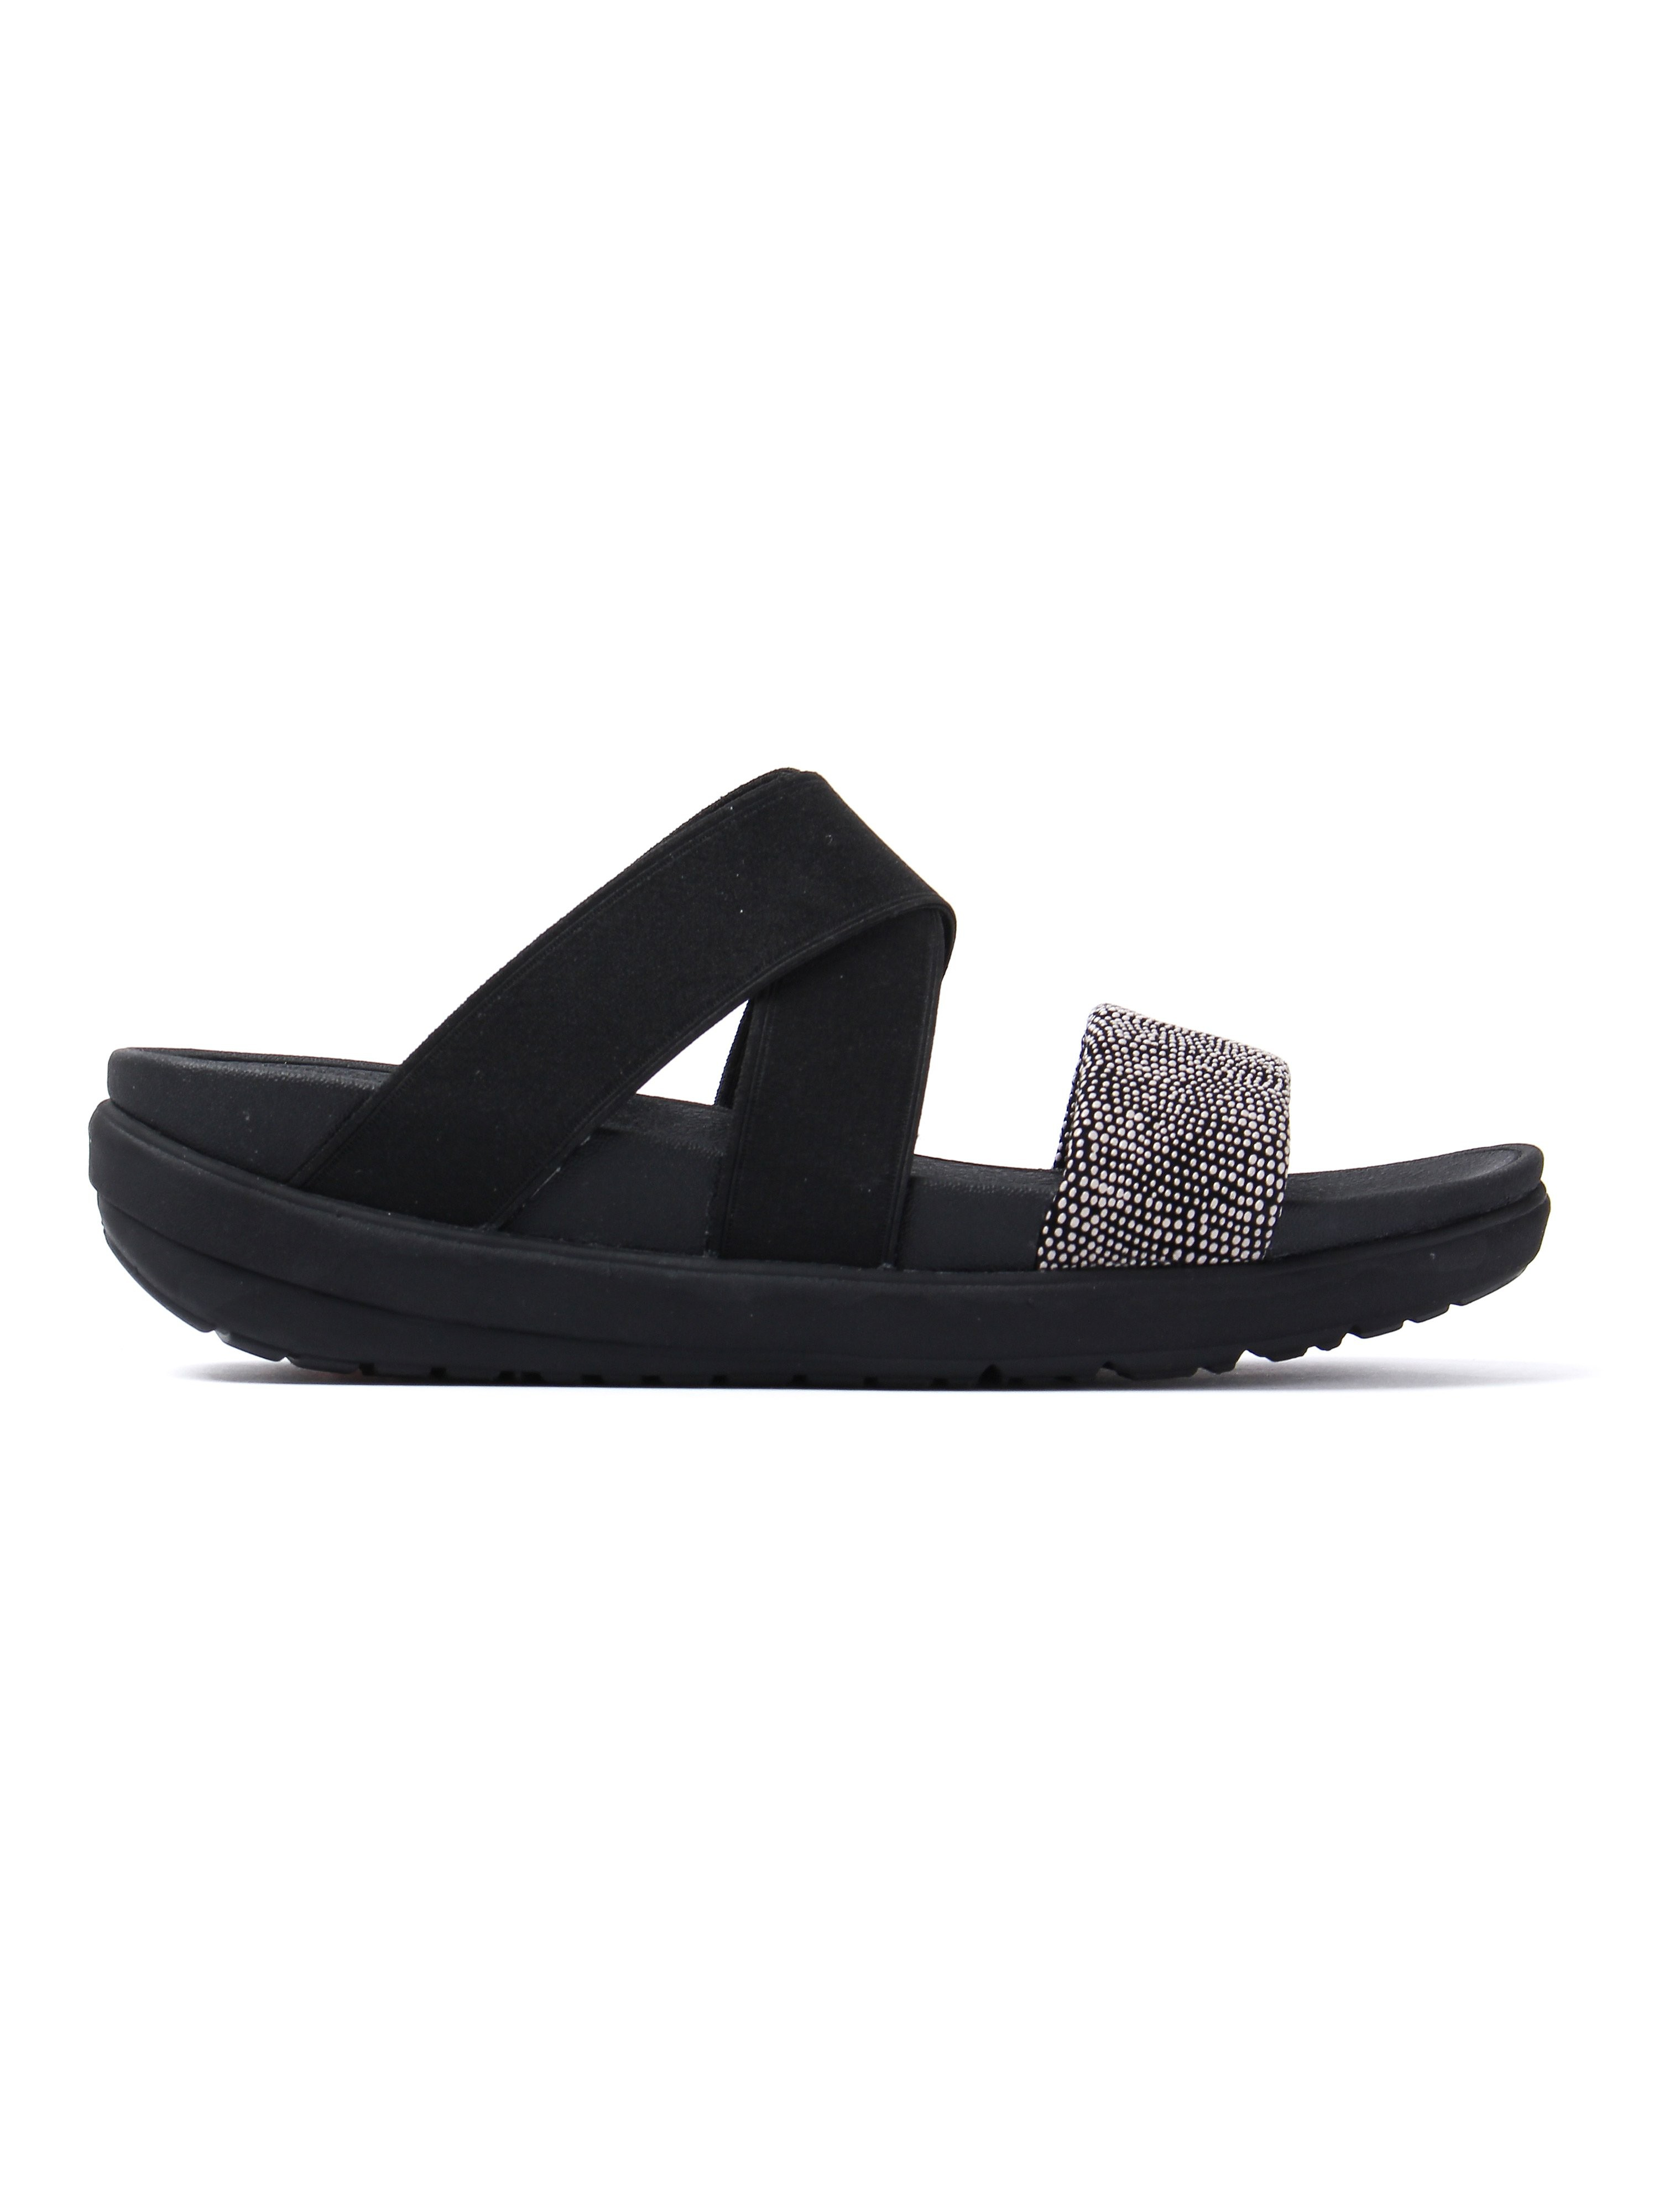 FitFlop Women's Loosh Crossover Sandals - Black Pebbledash